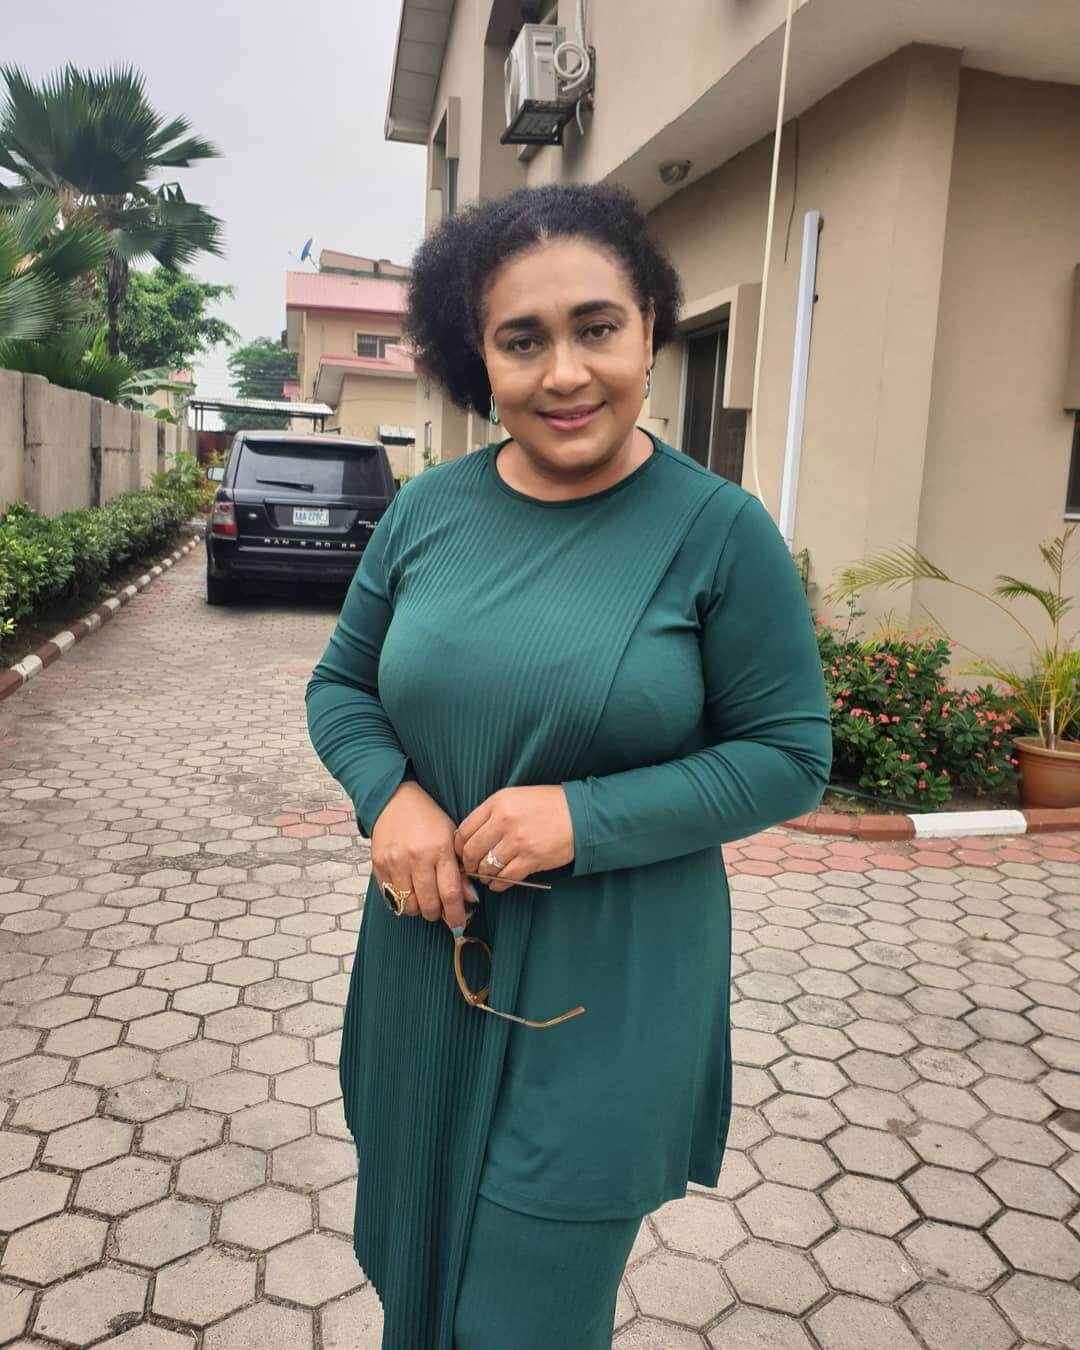 Hilda Dokubo is one of Nollywood's most notable veterans